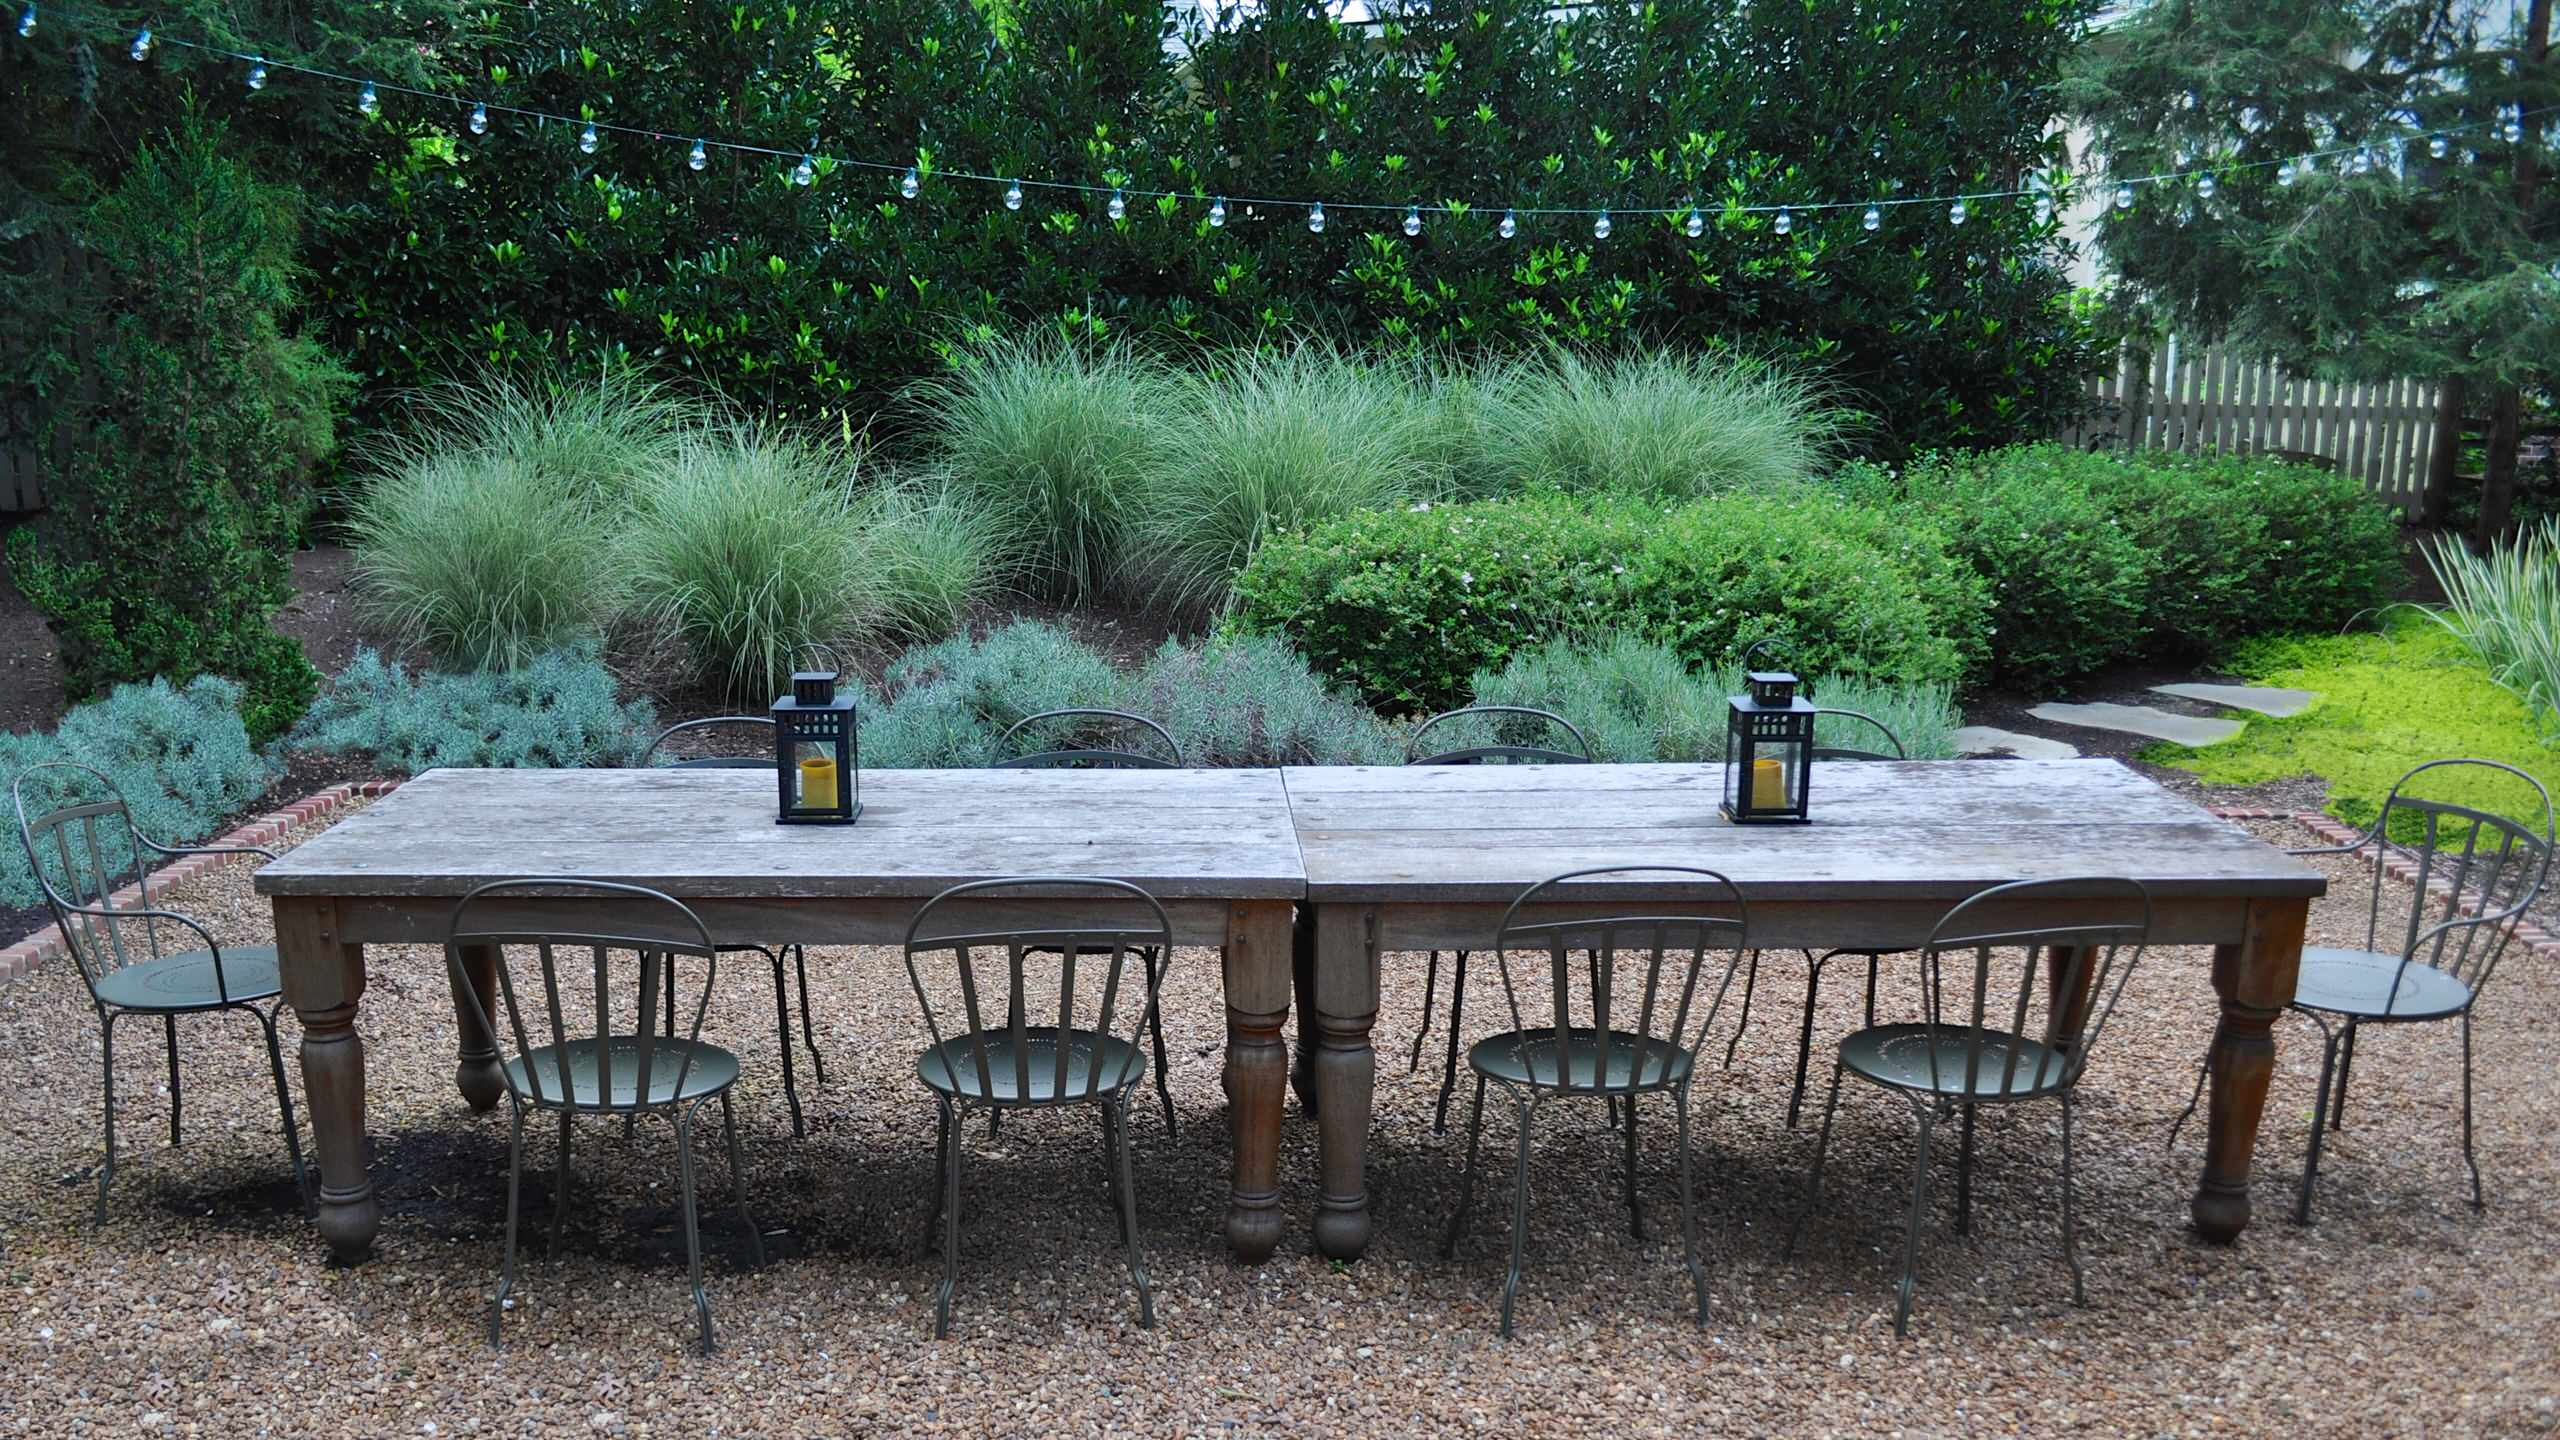 75 Beautiful Rustic Gravel Patio Pictures Ideas March 2021 Houzz